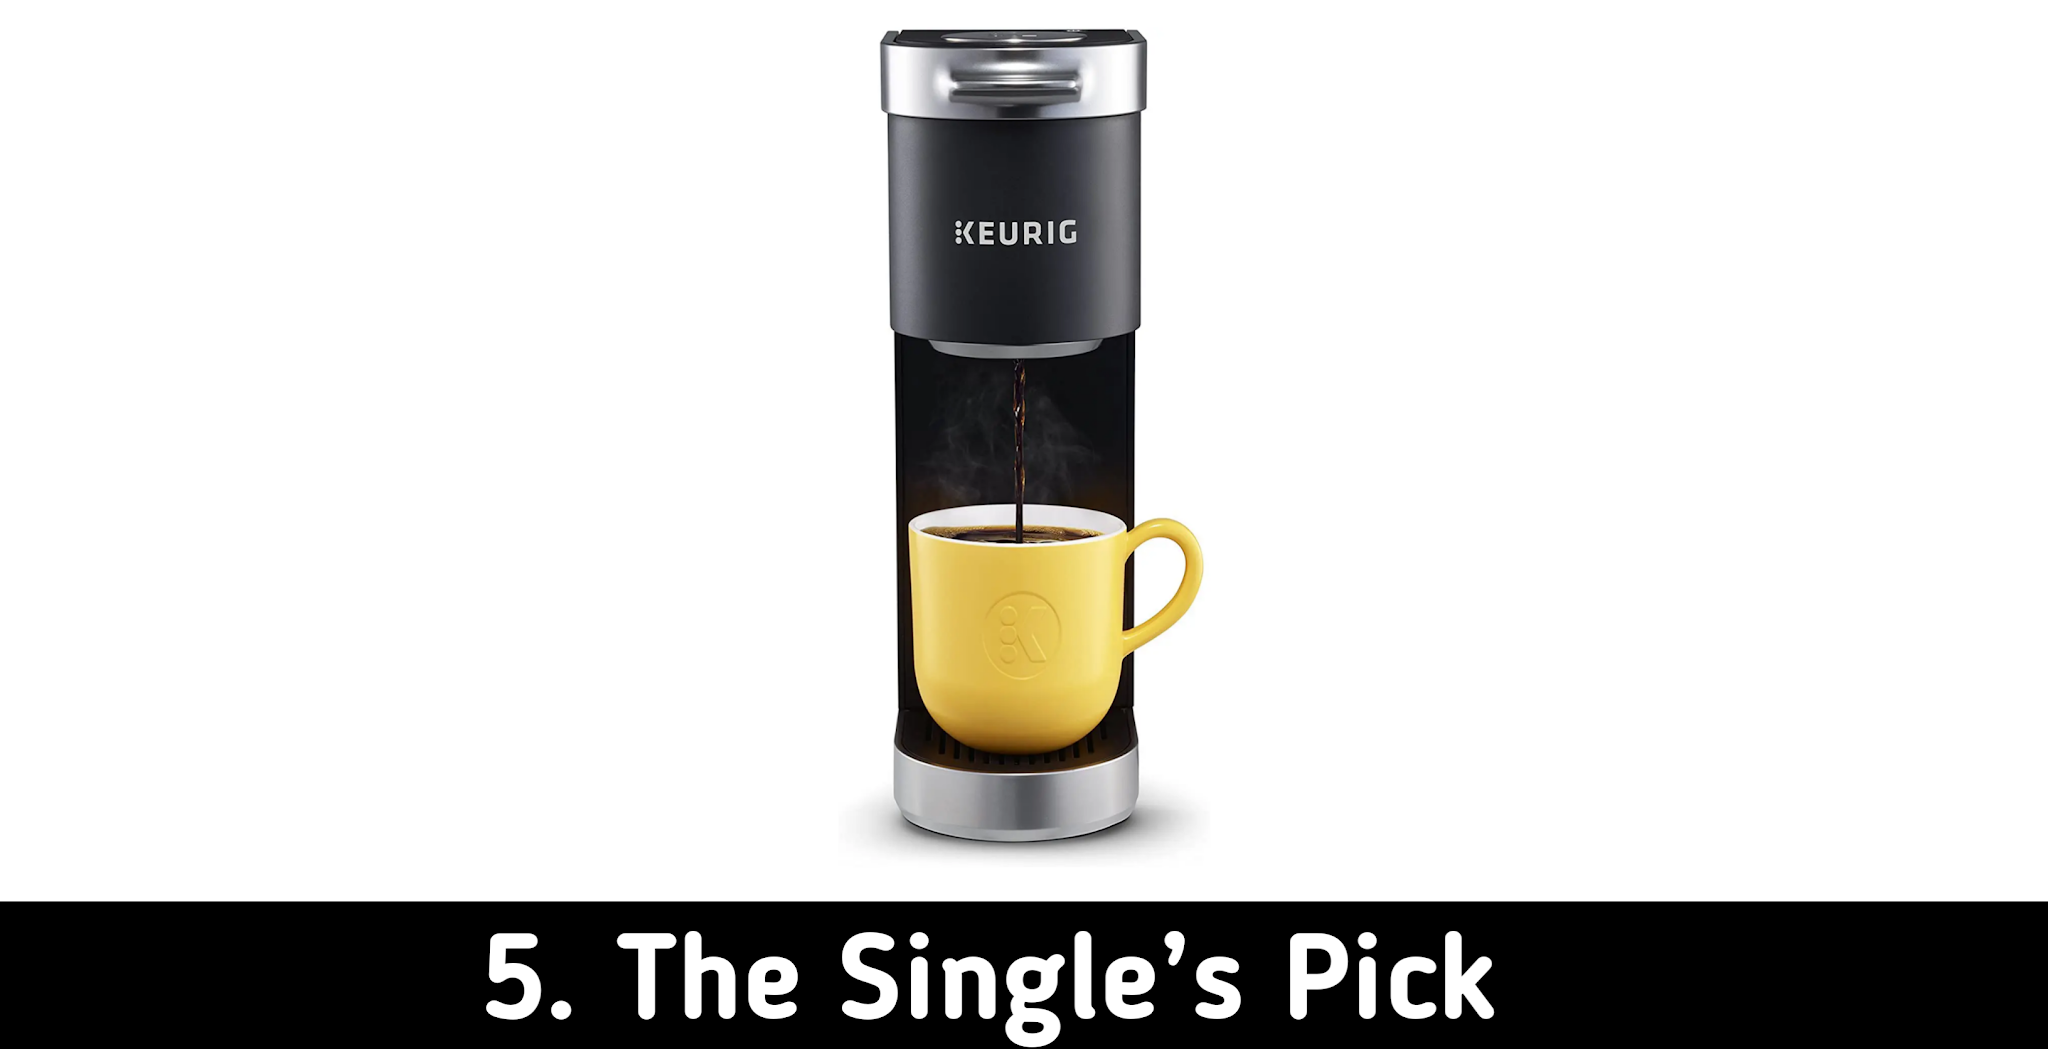 The Keurig Mini For One Coffee Maker